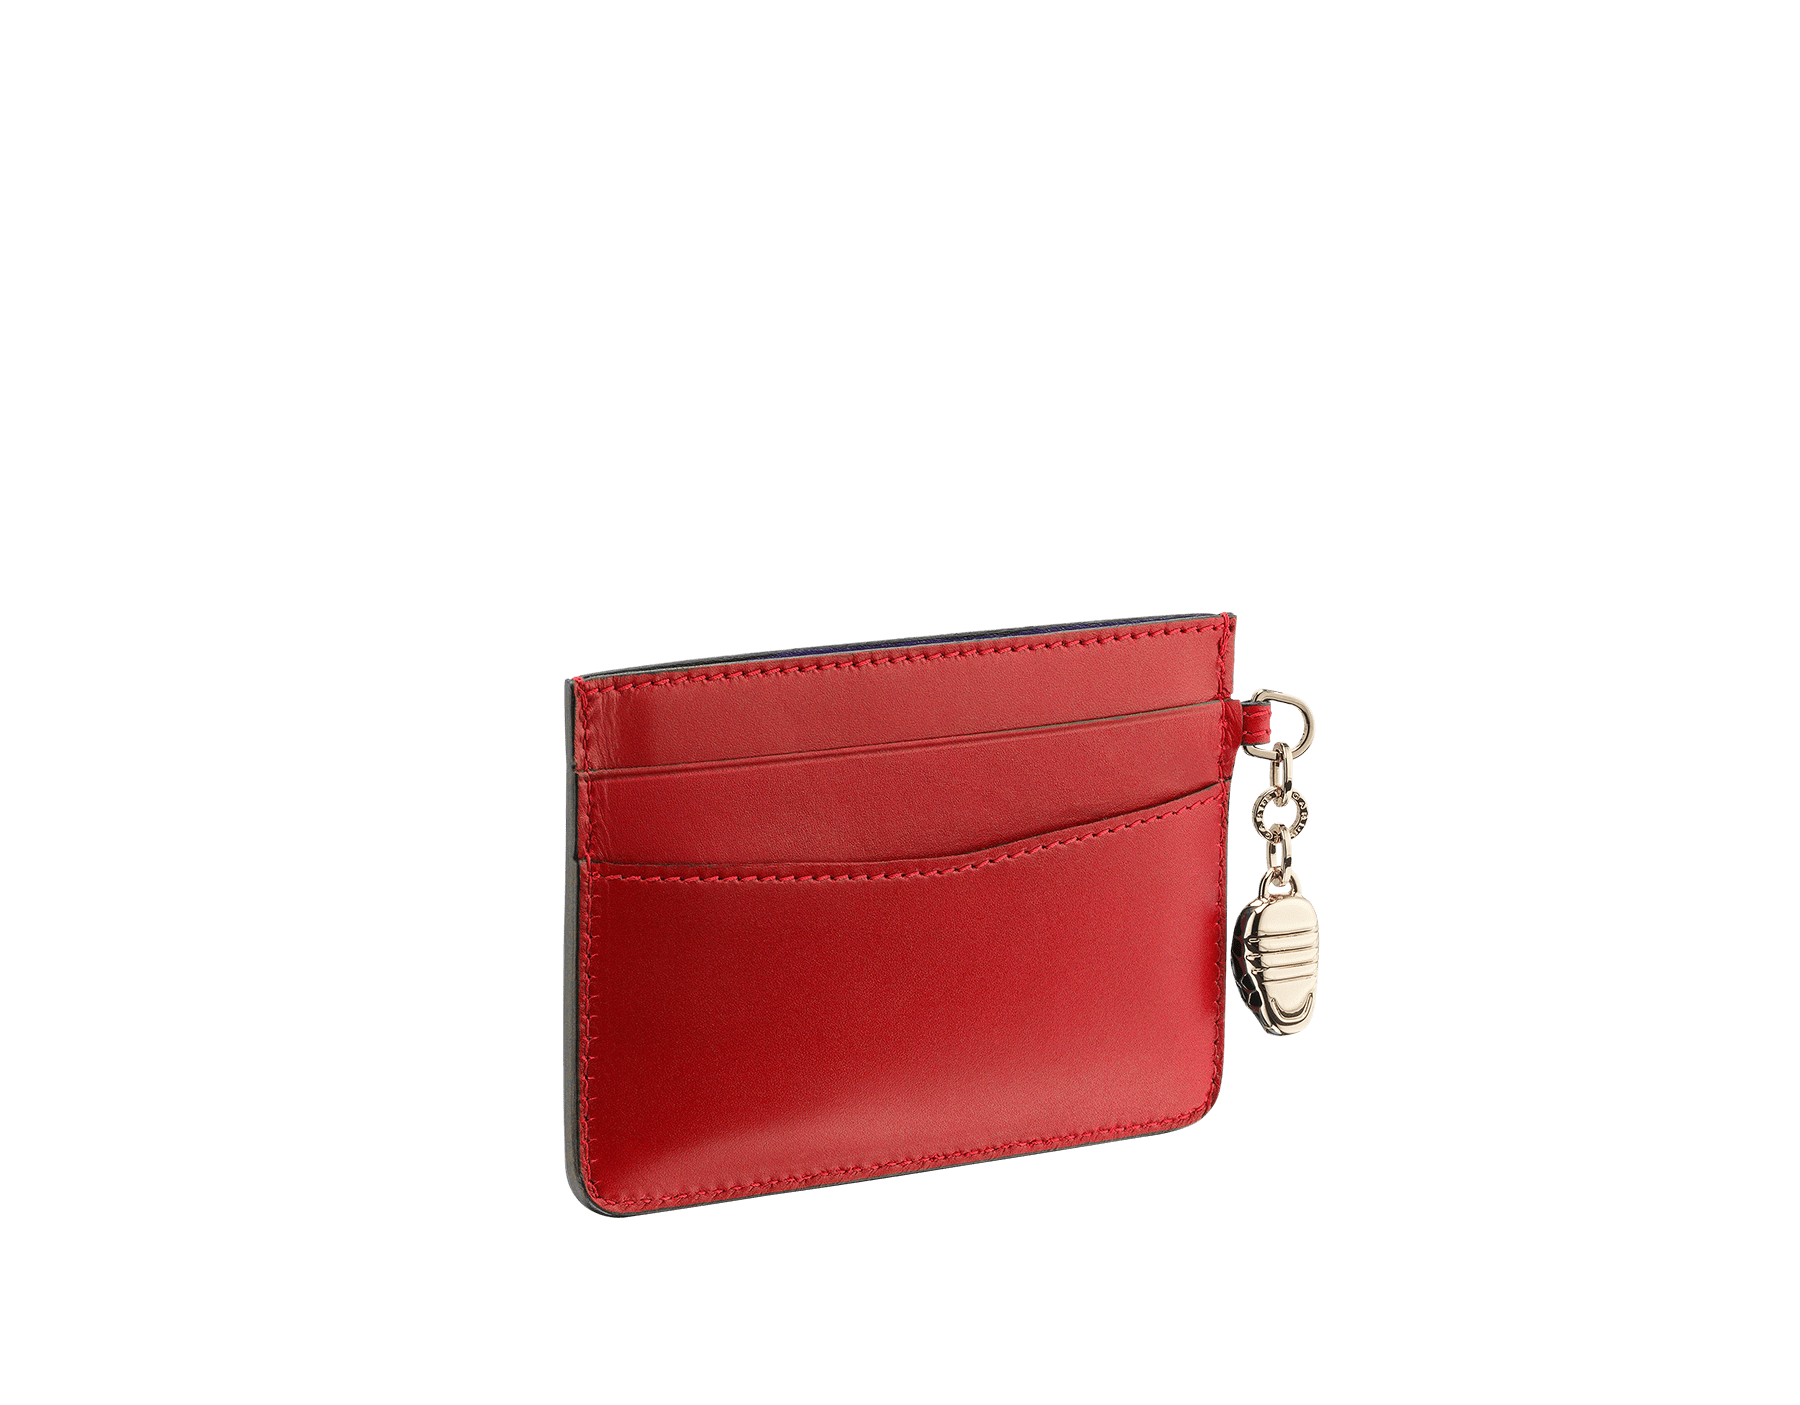 Credit card holder in ruby red and desert quartz calf leather. Serpenti charm in black and white enamel with green malachite enamel eyes and Bulgari logo in metal characters. 282020 image 2